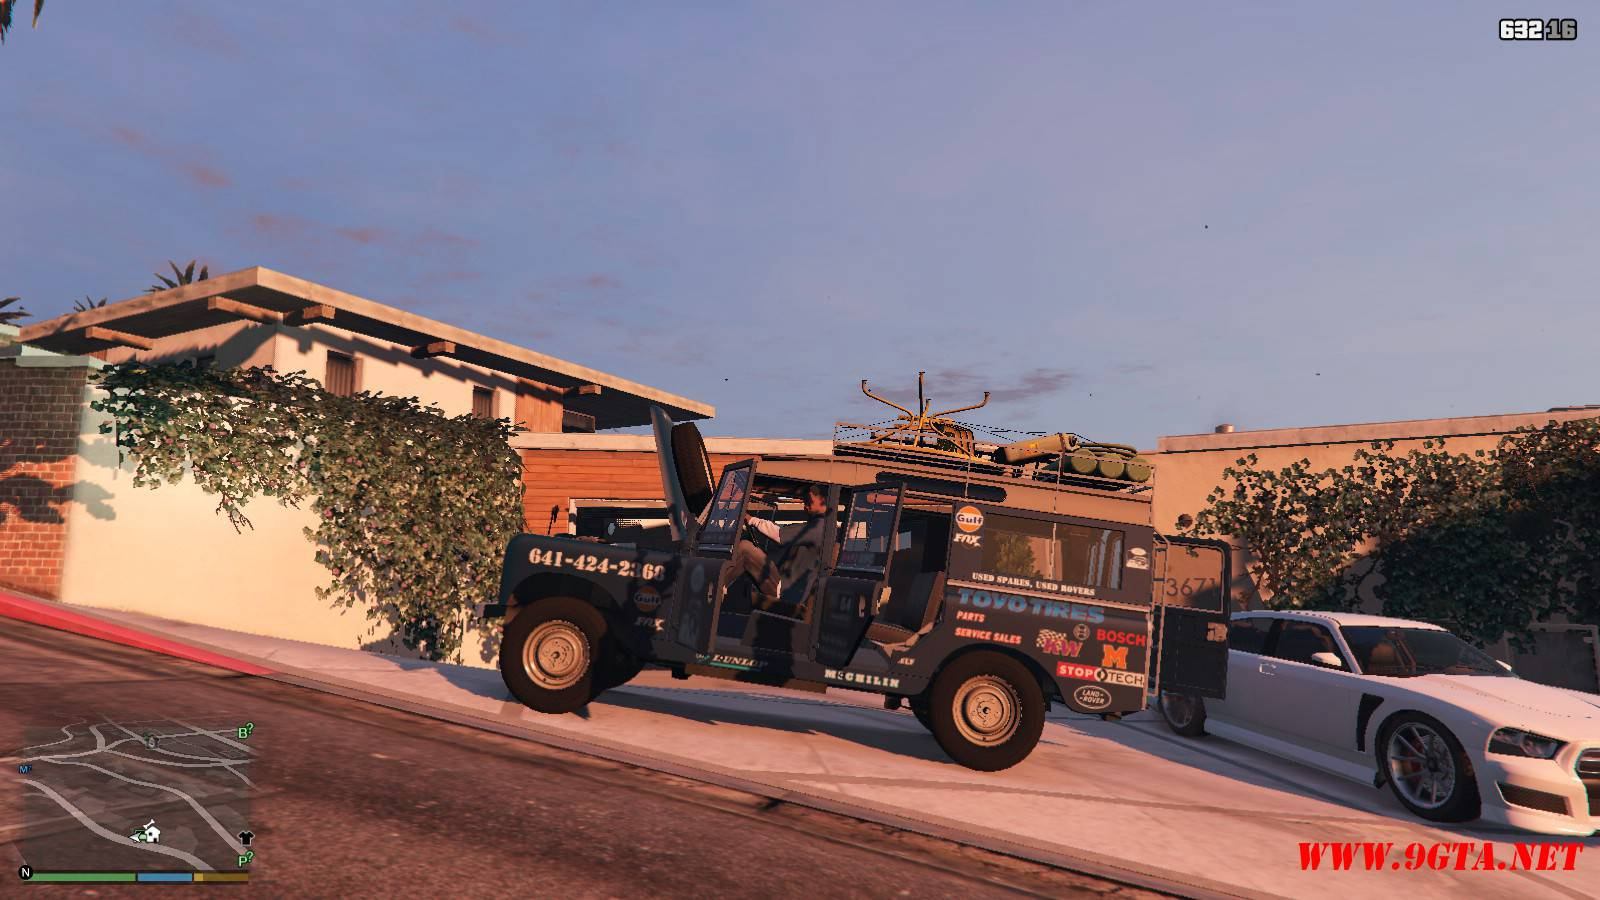 1971 Land Rover Series II Model 109A GTA5 Mods (10)